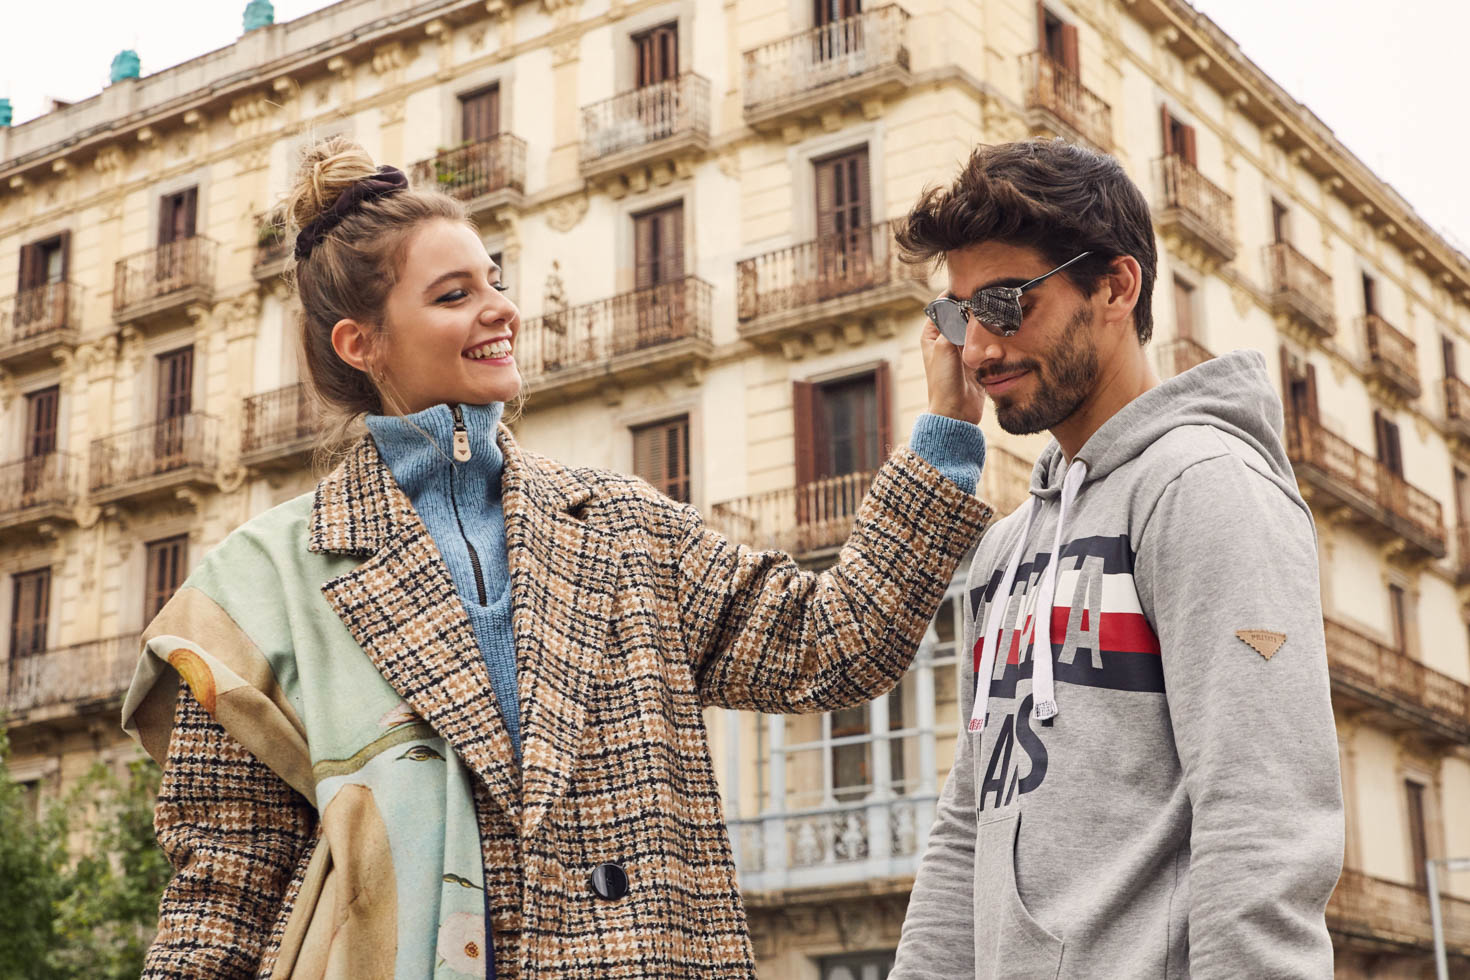 For the new AW20 Privata campaign, the brand and us thought it was important to support our struggling cities and their people. Therefore it was important to have a friends story within the city, showing a positive mood and an enjoy life attitude.